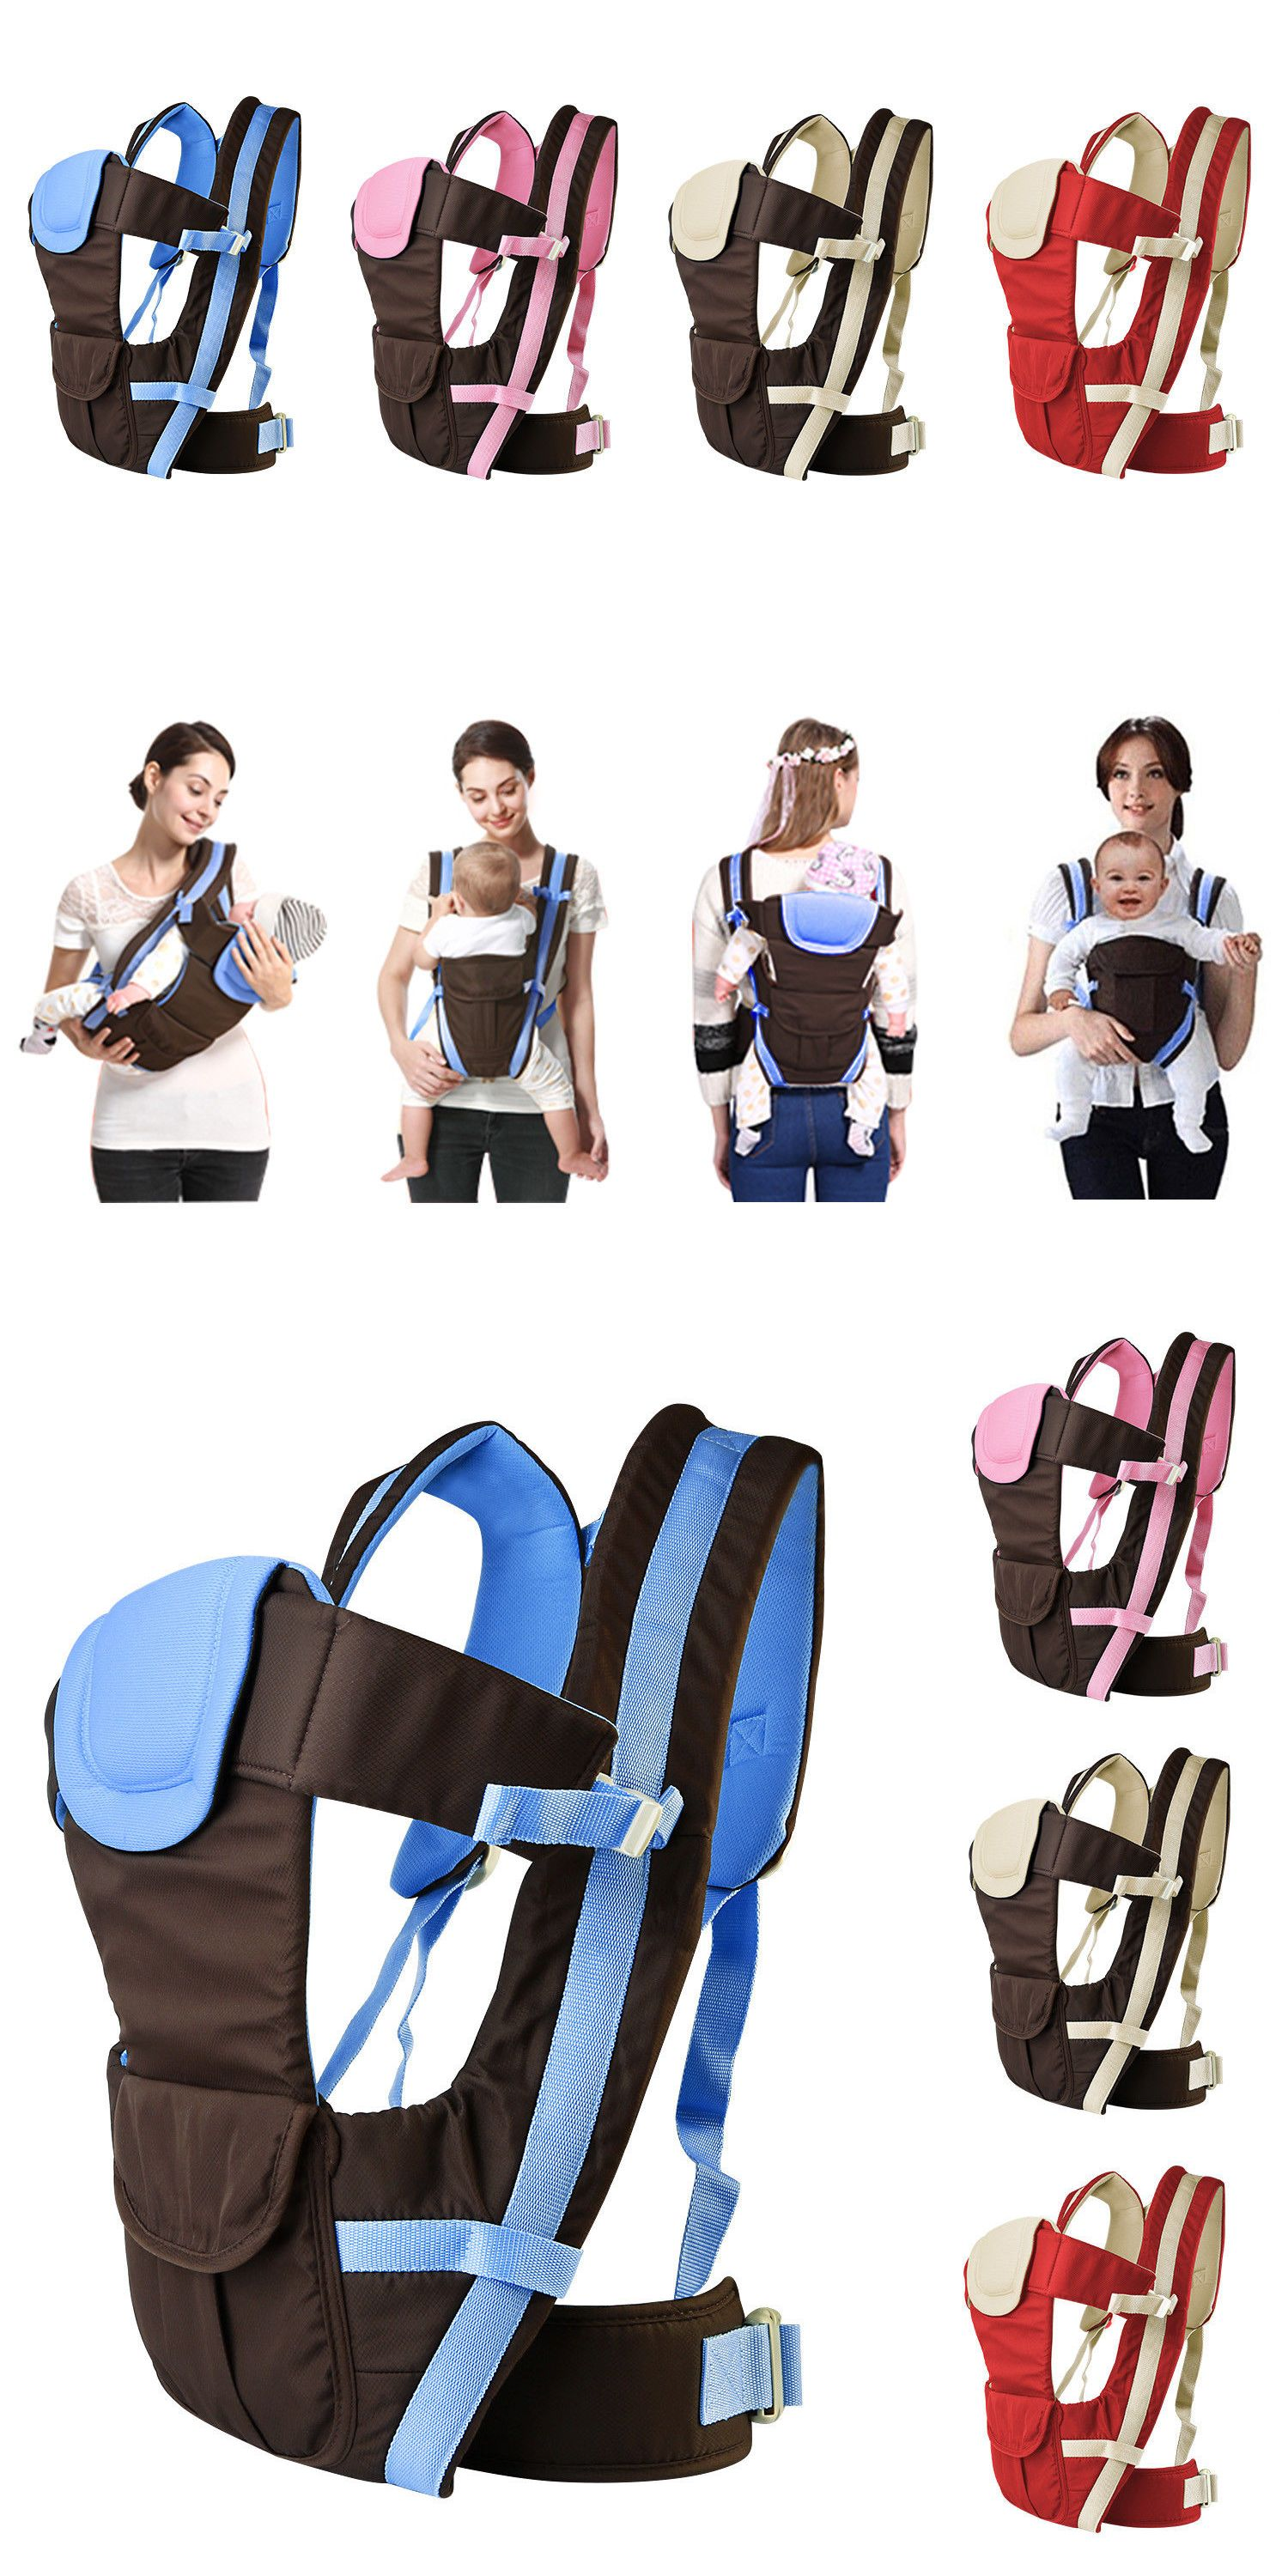 ae9de9fb5dc Carriers Slings and Backpacks 100982  Newborn Infant Baby Carrier  Breathable Ergonomic Adjustable Wrap Sling Backpack